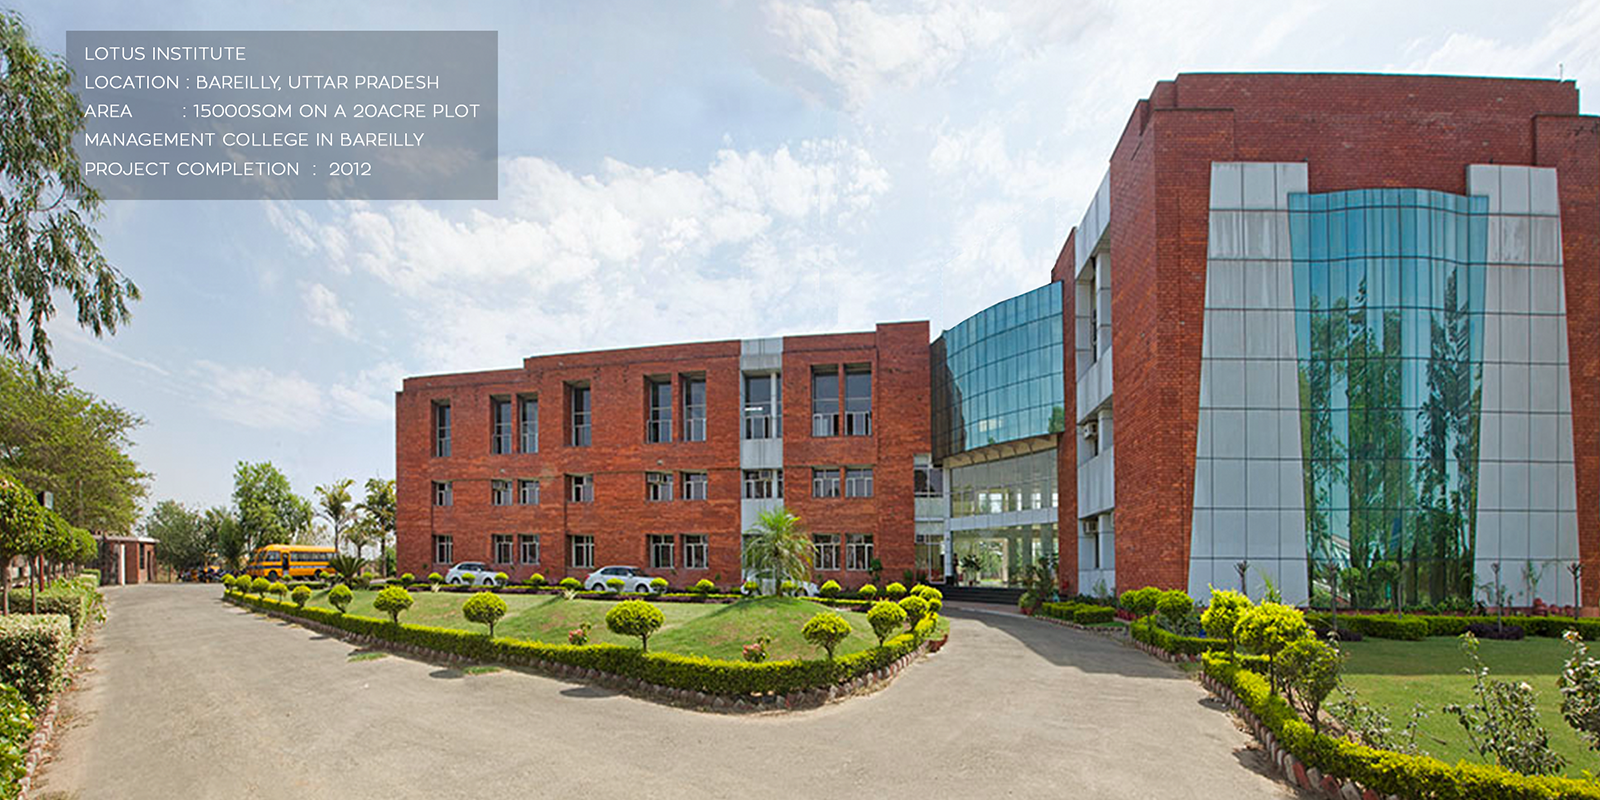 lotus-institute-1-the-novarch-architects-best-architects-in-cr-park-south-delhi-110019